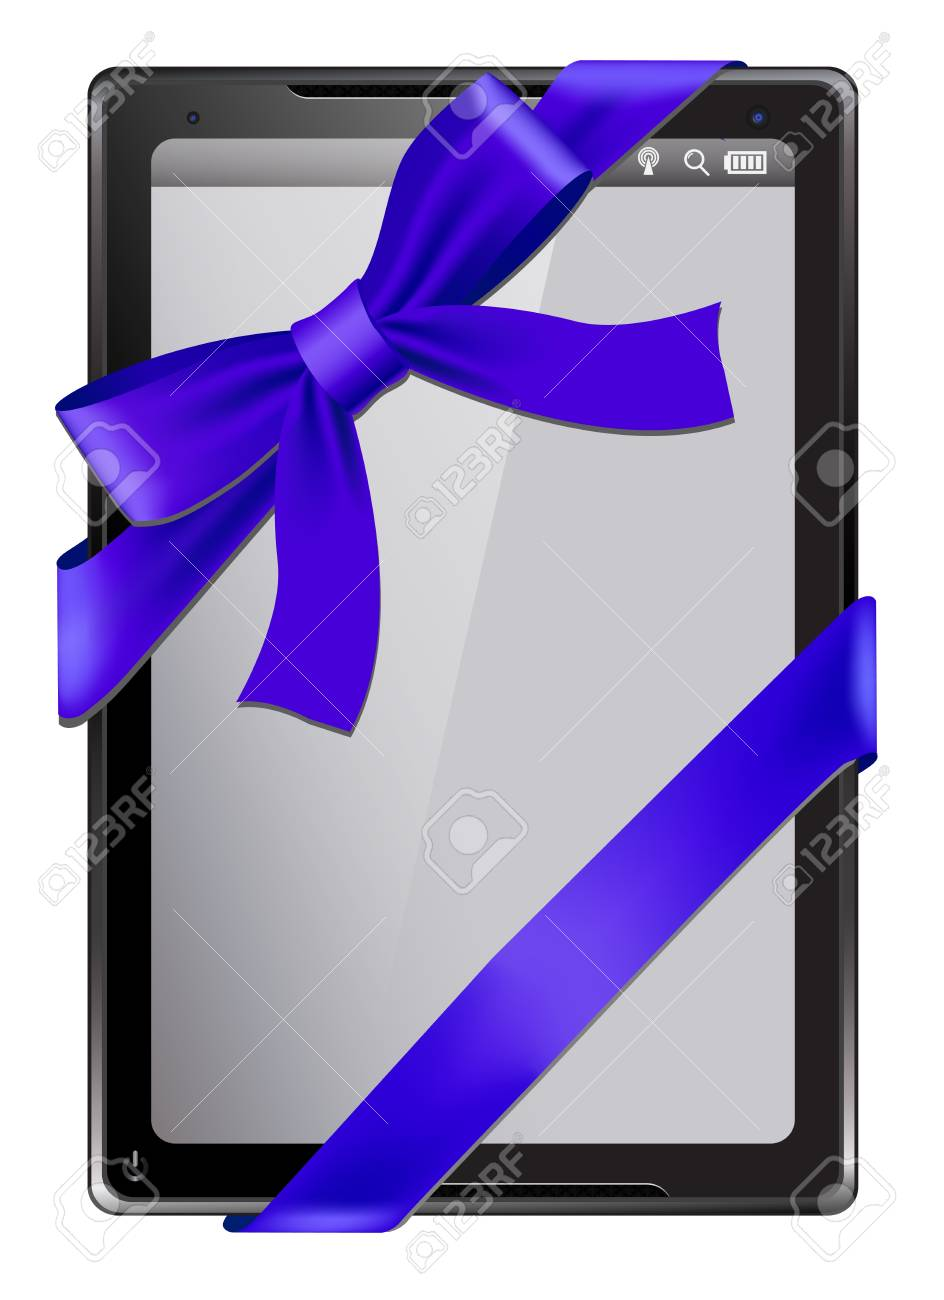 Digital tablet as a gift Stock Vector - 16015614